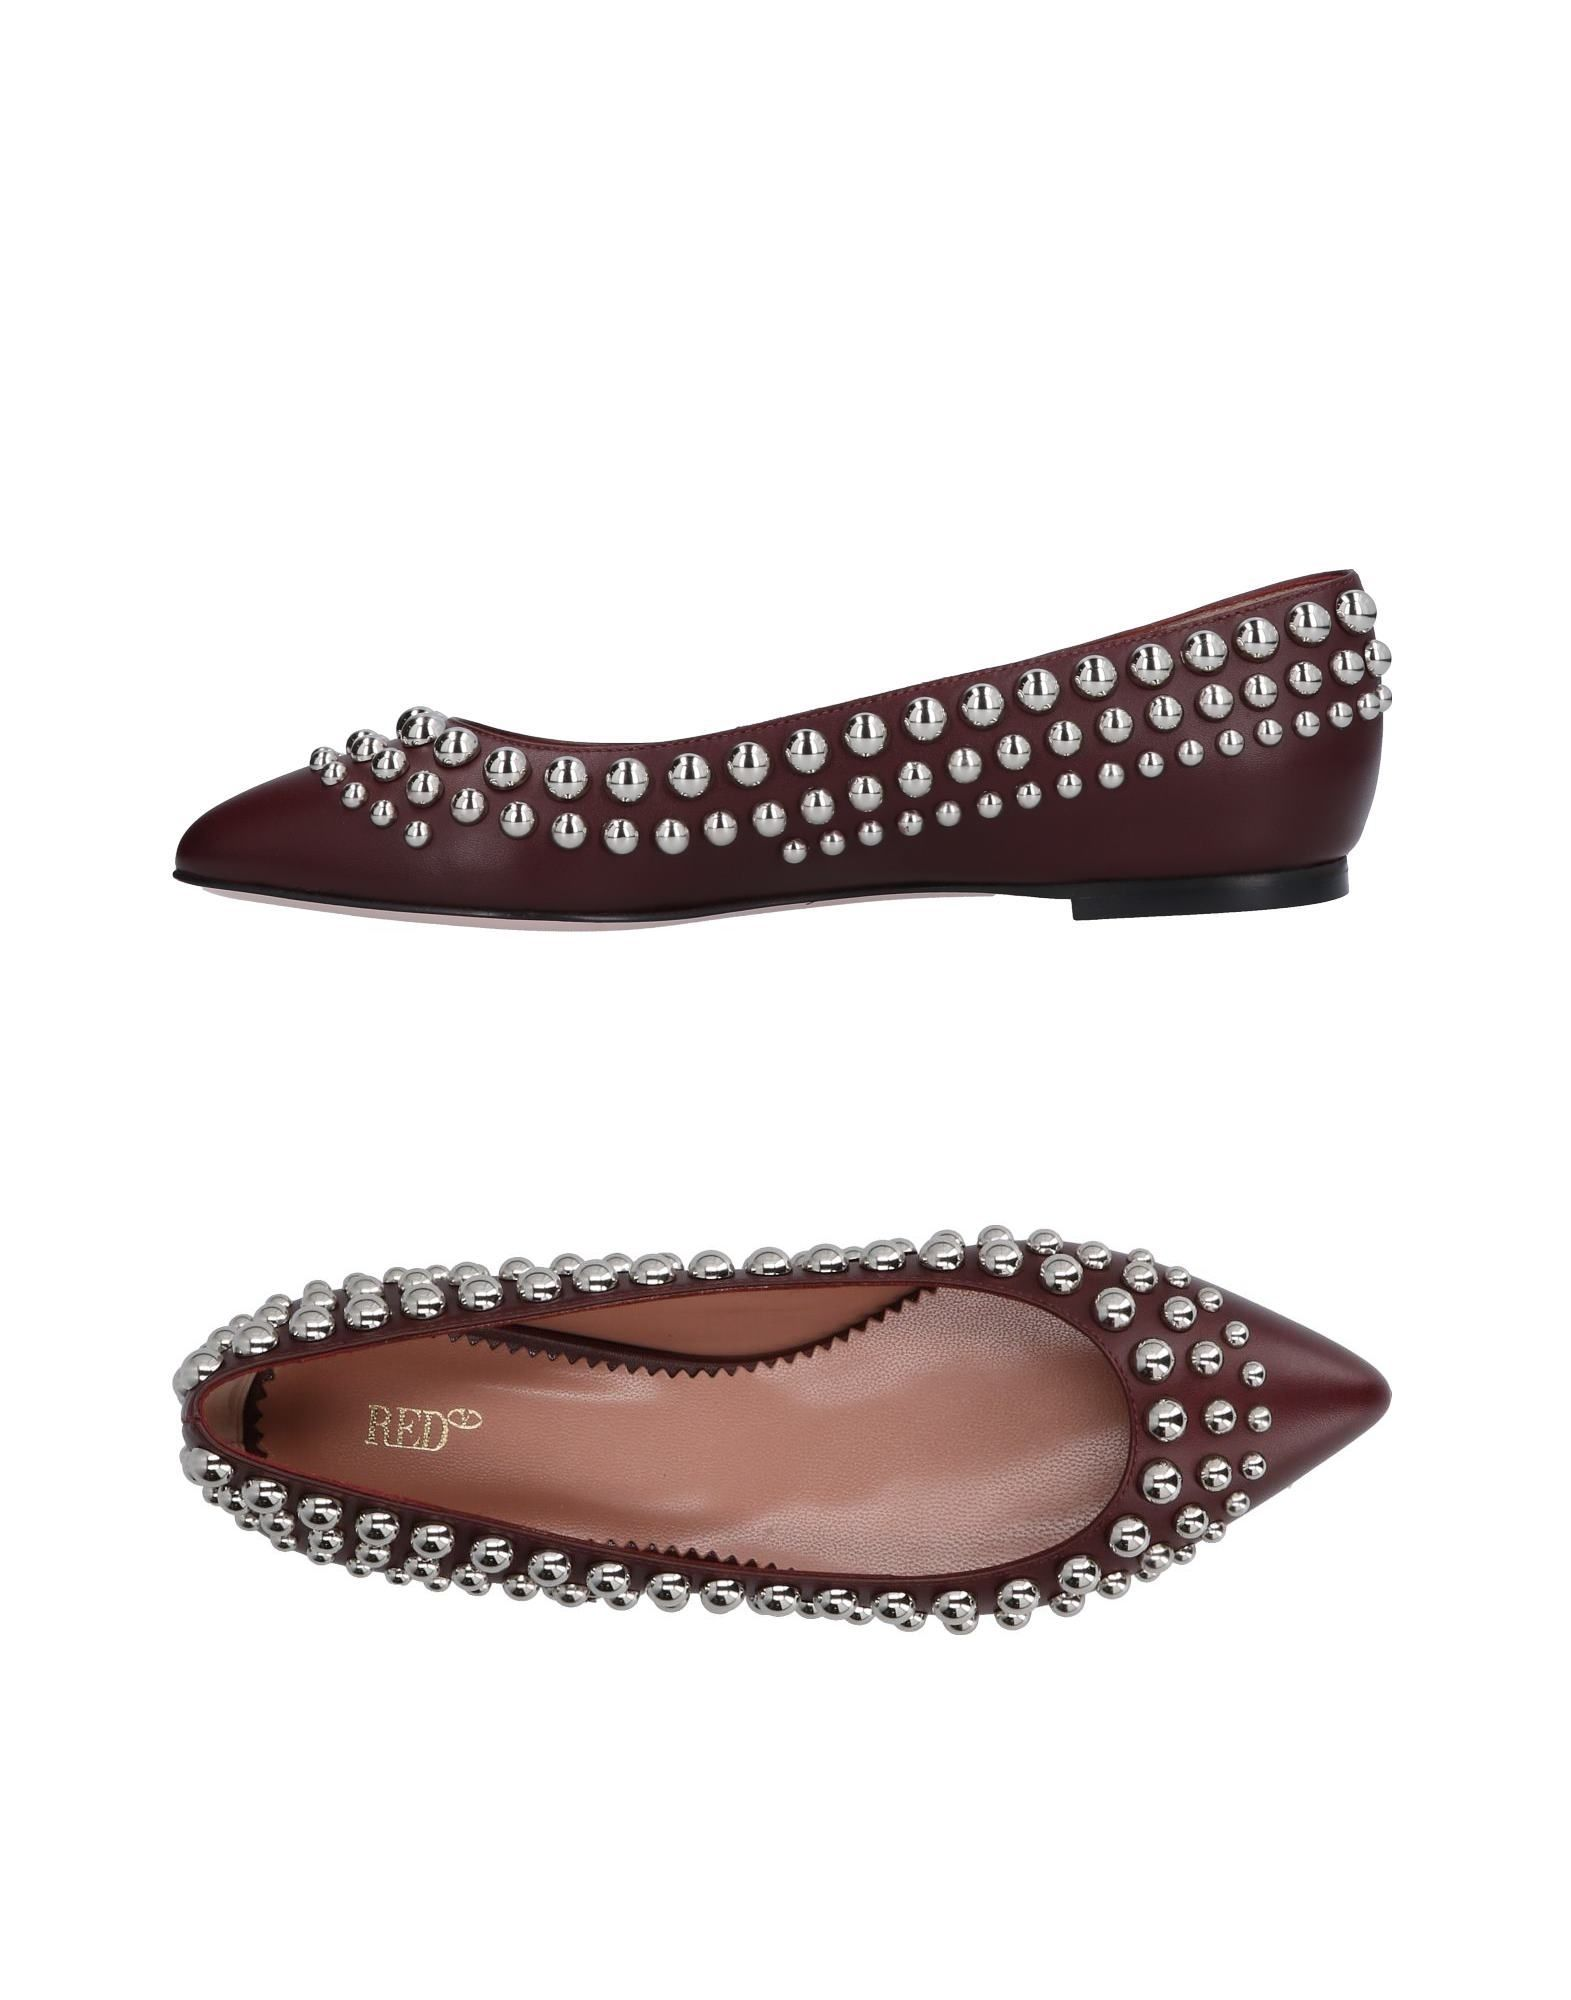 Red(V) Ballet Flats Flats Flats - Women Red(V) Ballet Flats online on  United Kingdom - 11218542QP 58bbe6